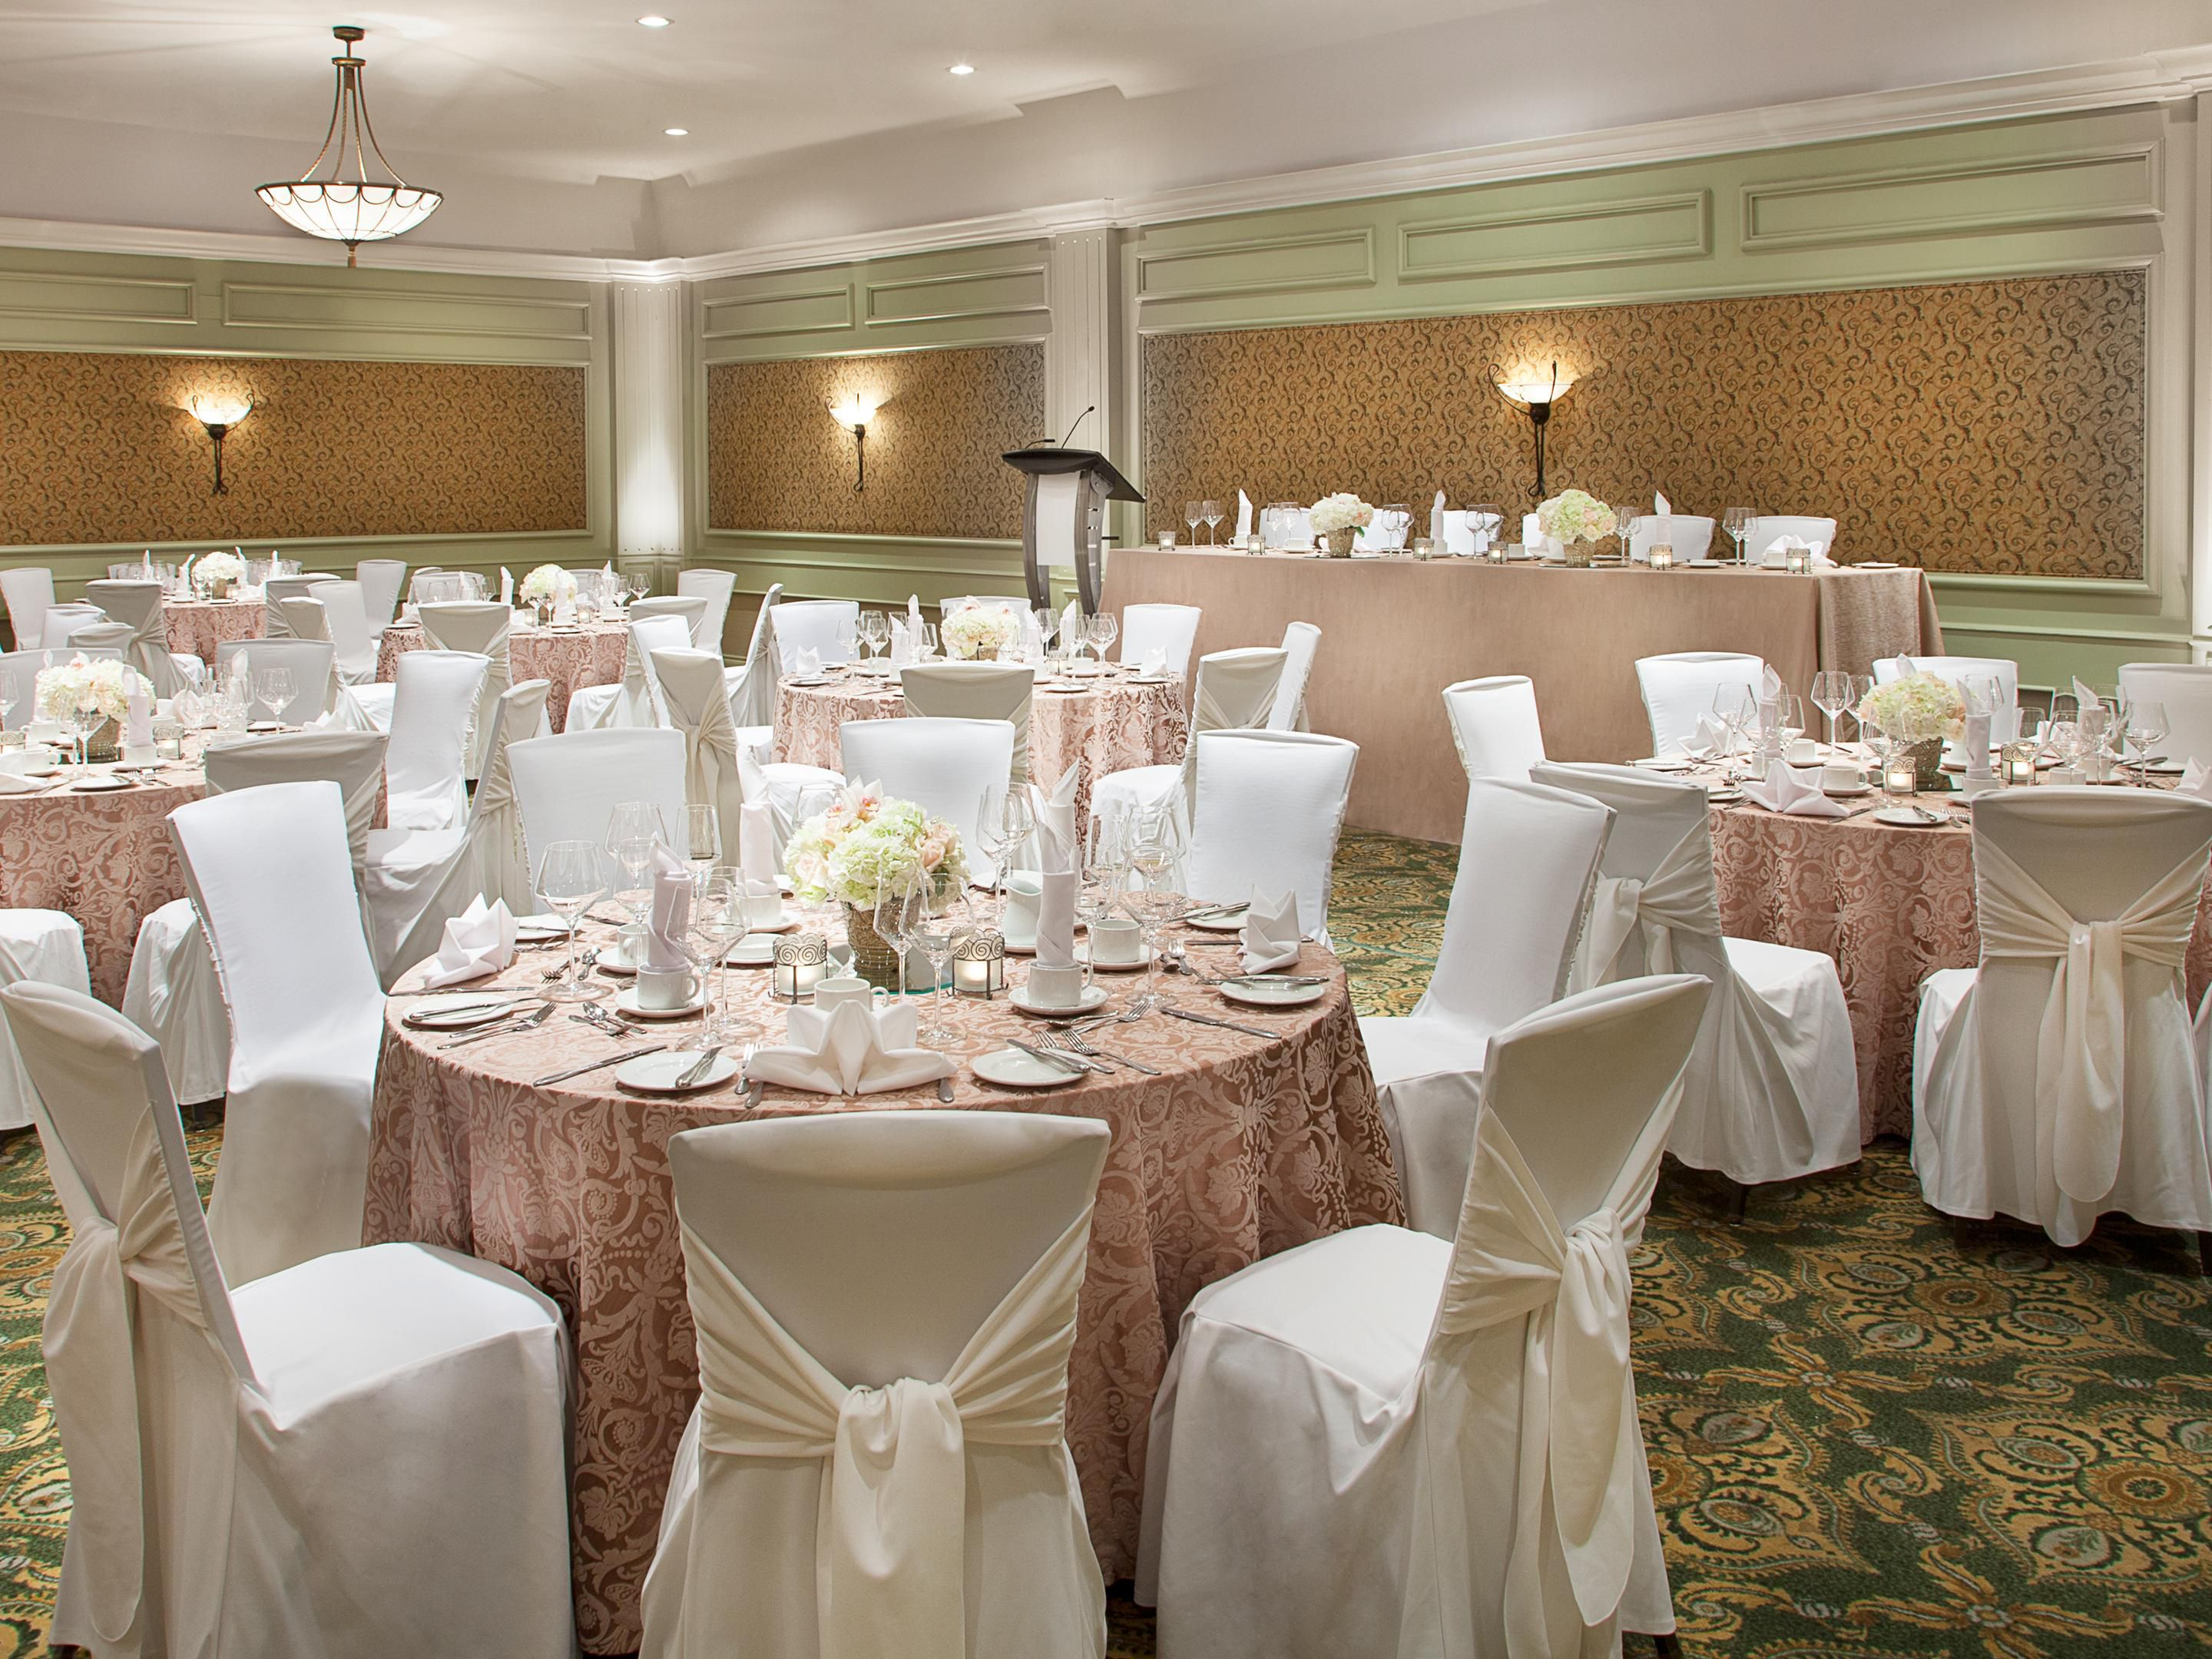 York Ballroom - Over 11,000 sq. ft. of Meeting & Event Space